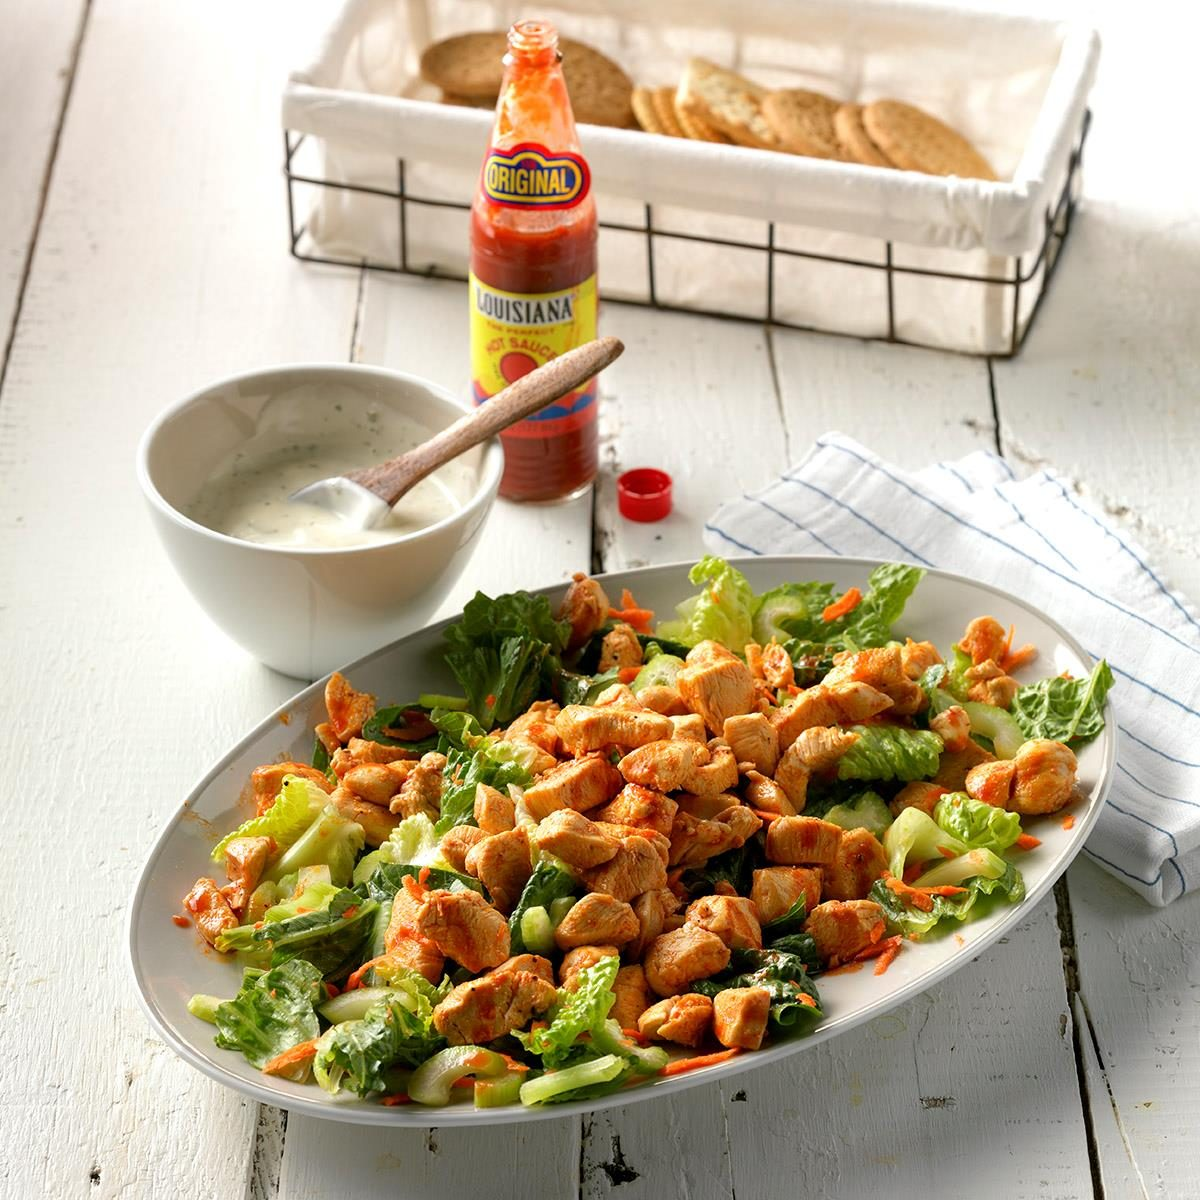 Inspired by: Bojangle's Roasted Chicken Bites Salad